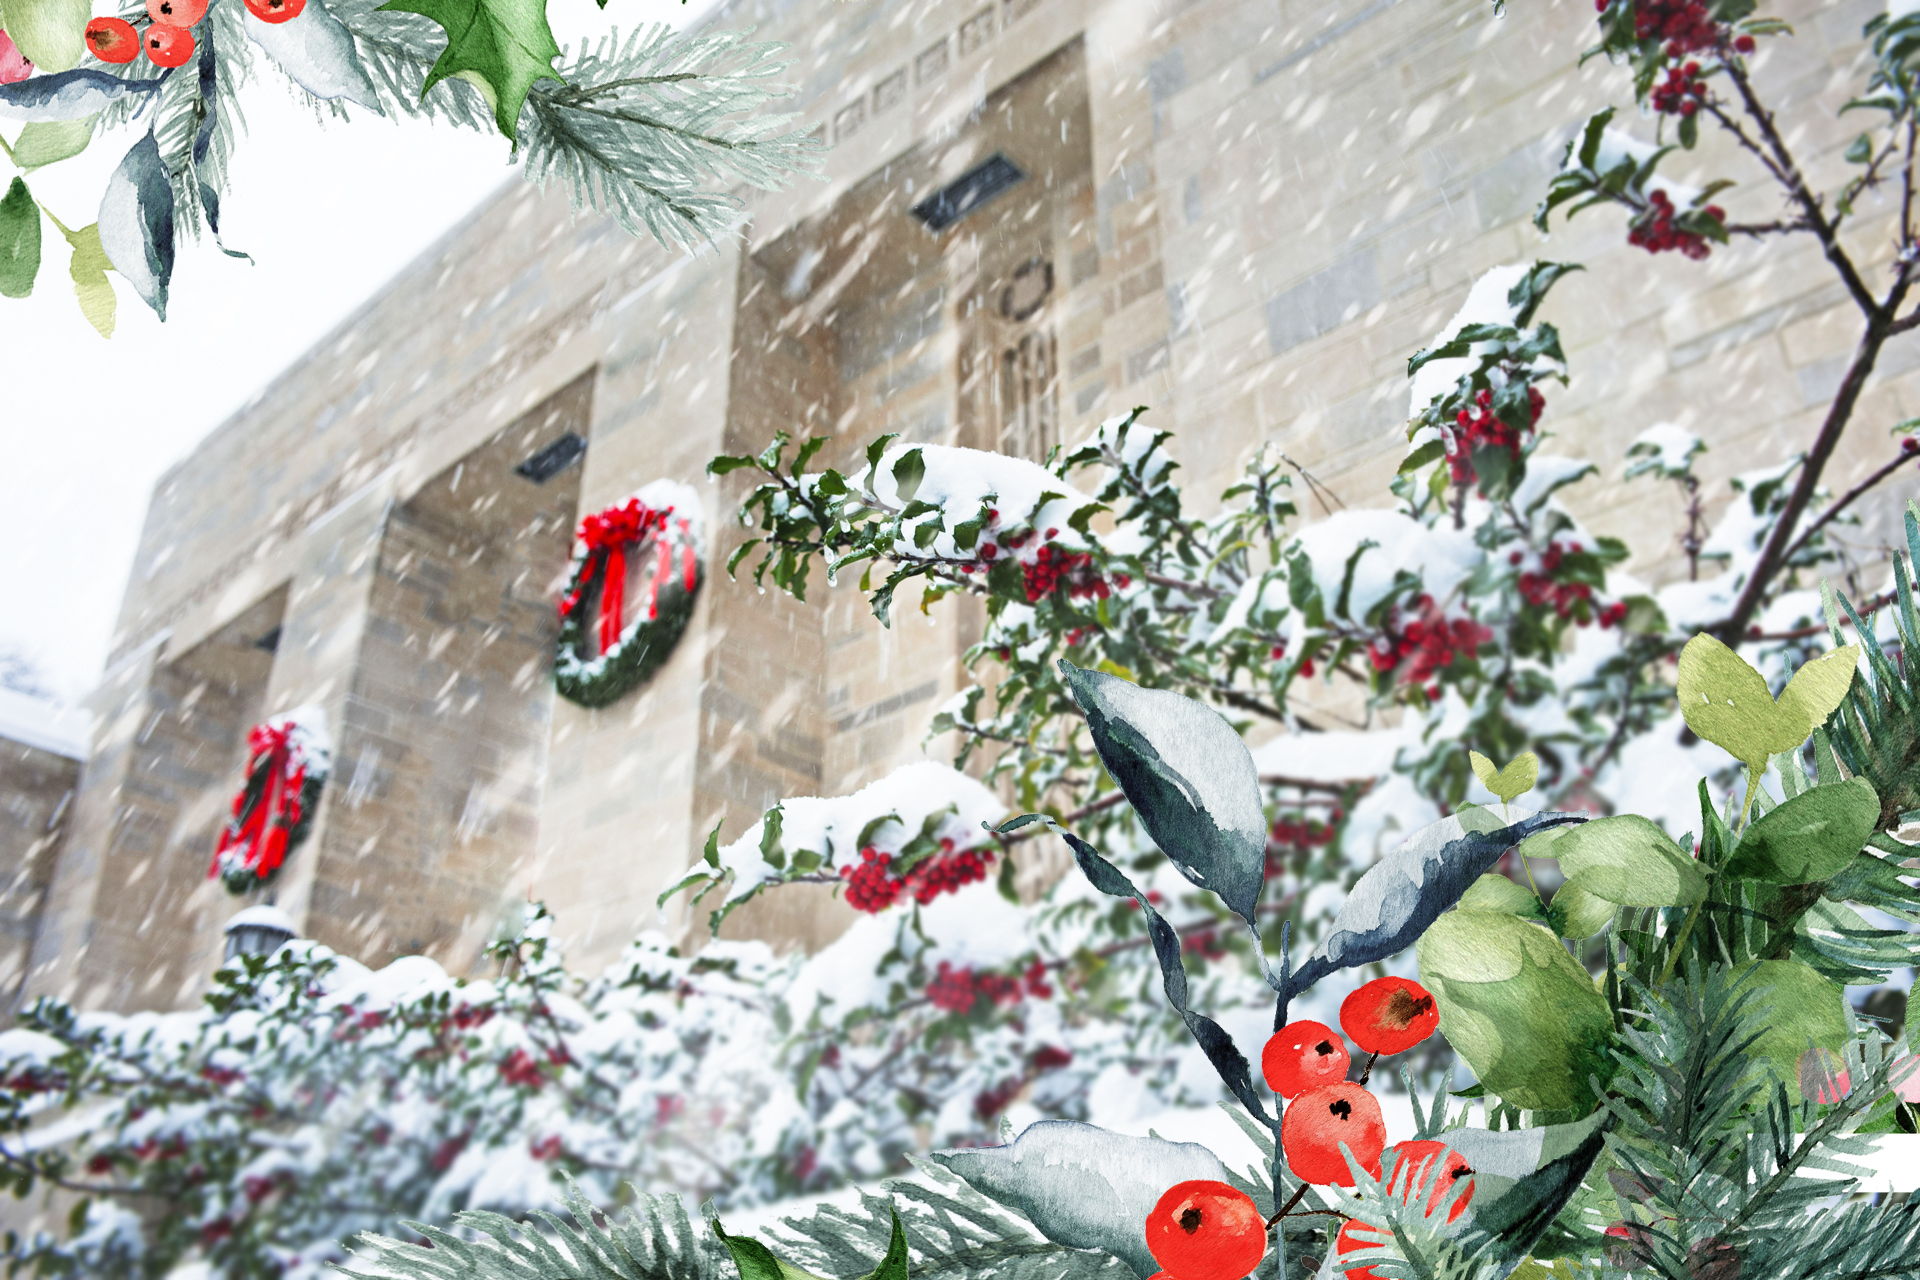 A snow covered Lilly Library is depicted with a festive frame of greenery overlaid on the image